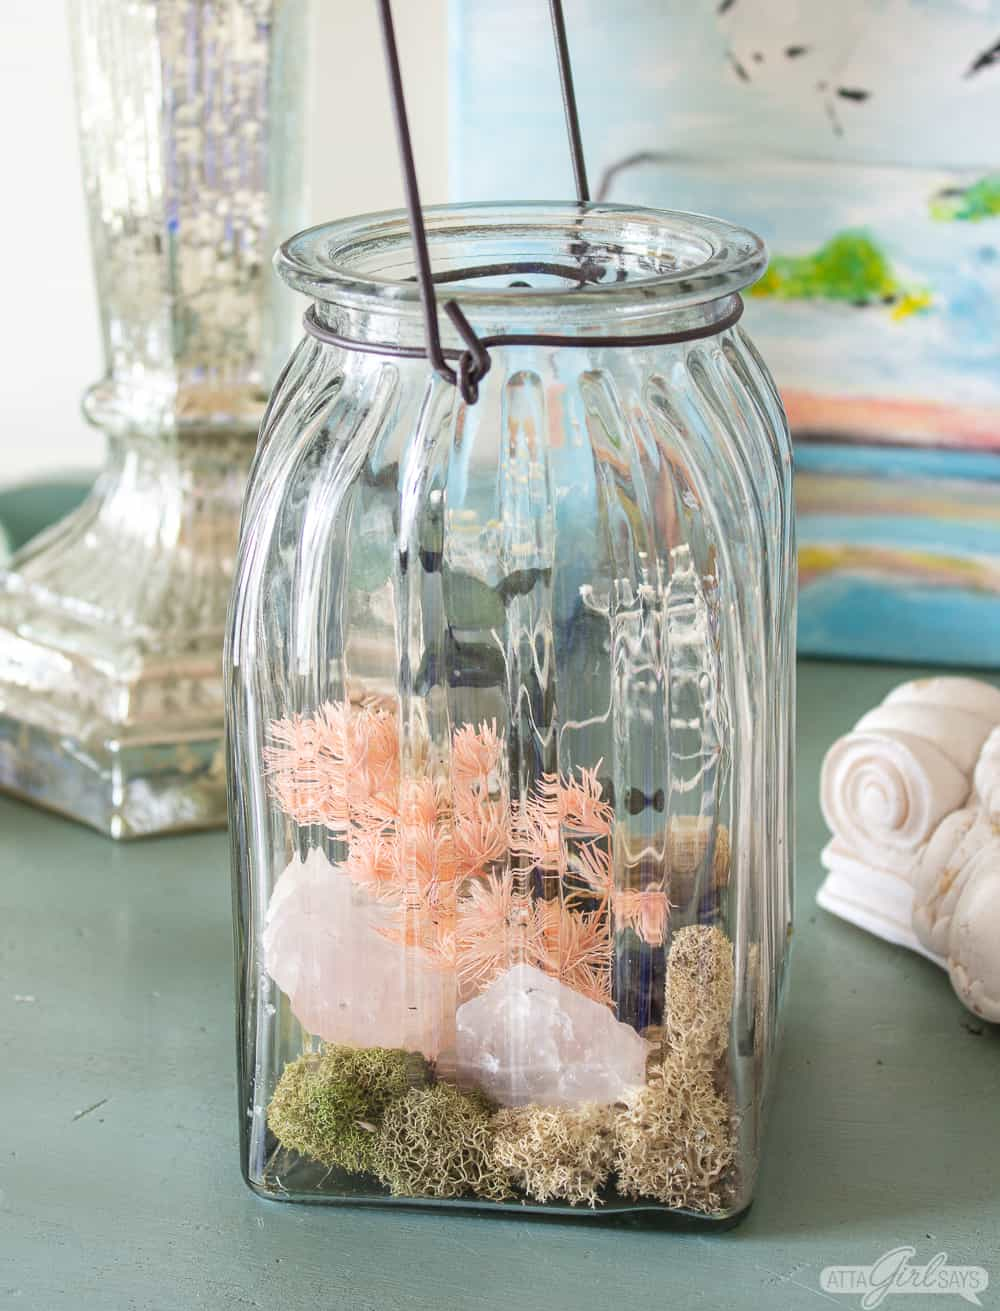 glass jar filled with homemade potpourri made from dried flowers, rocks and moss